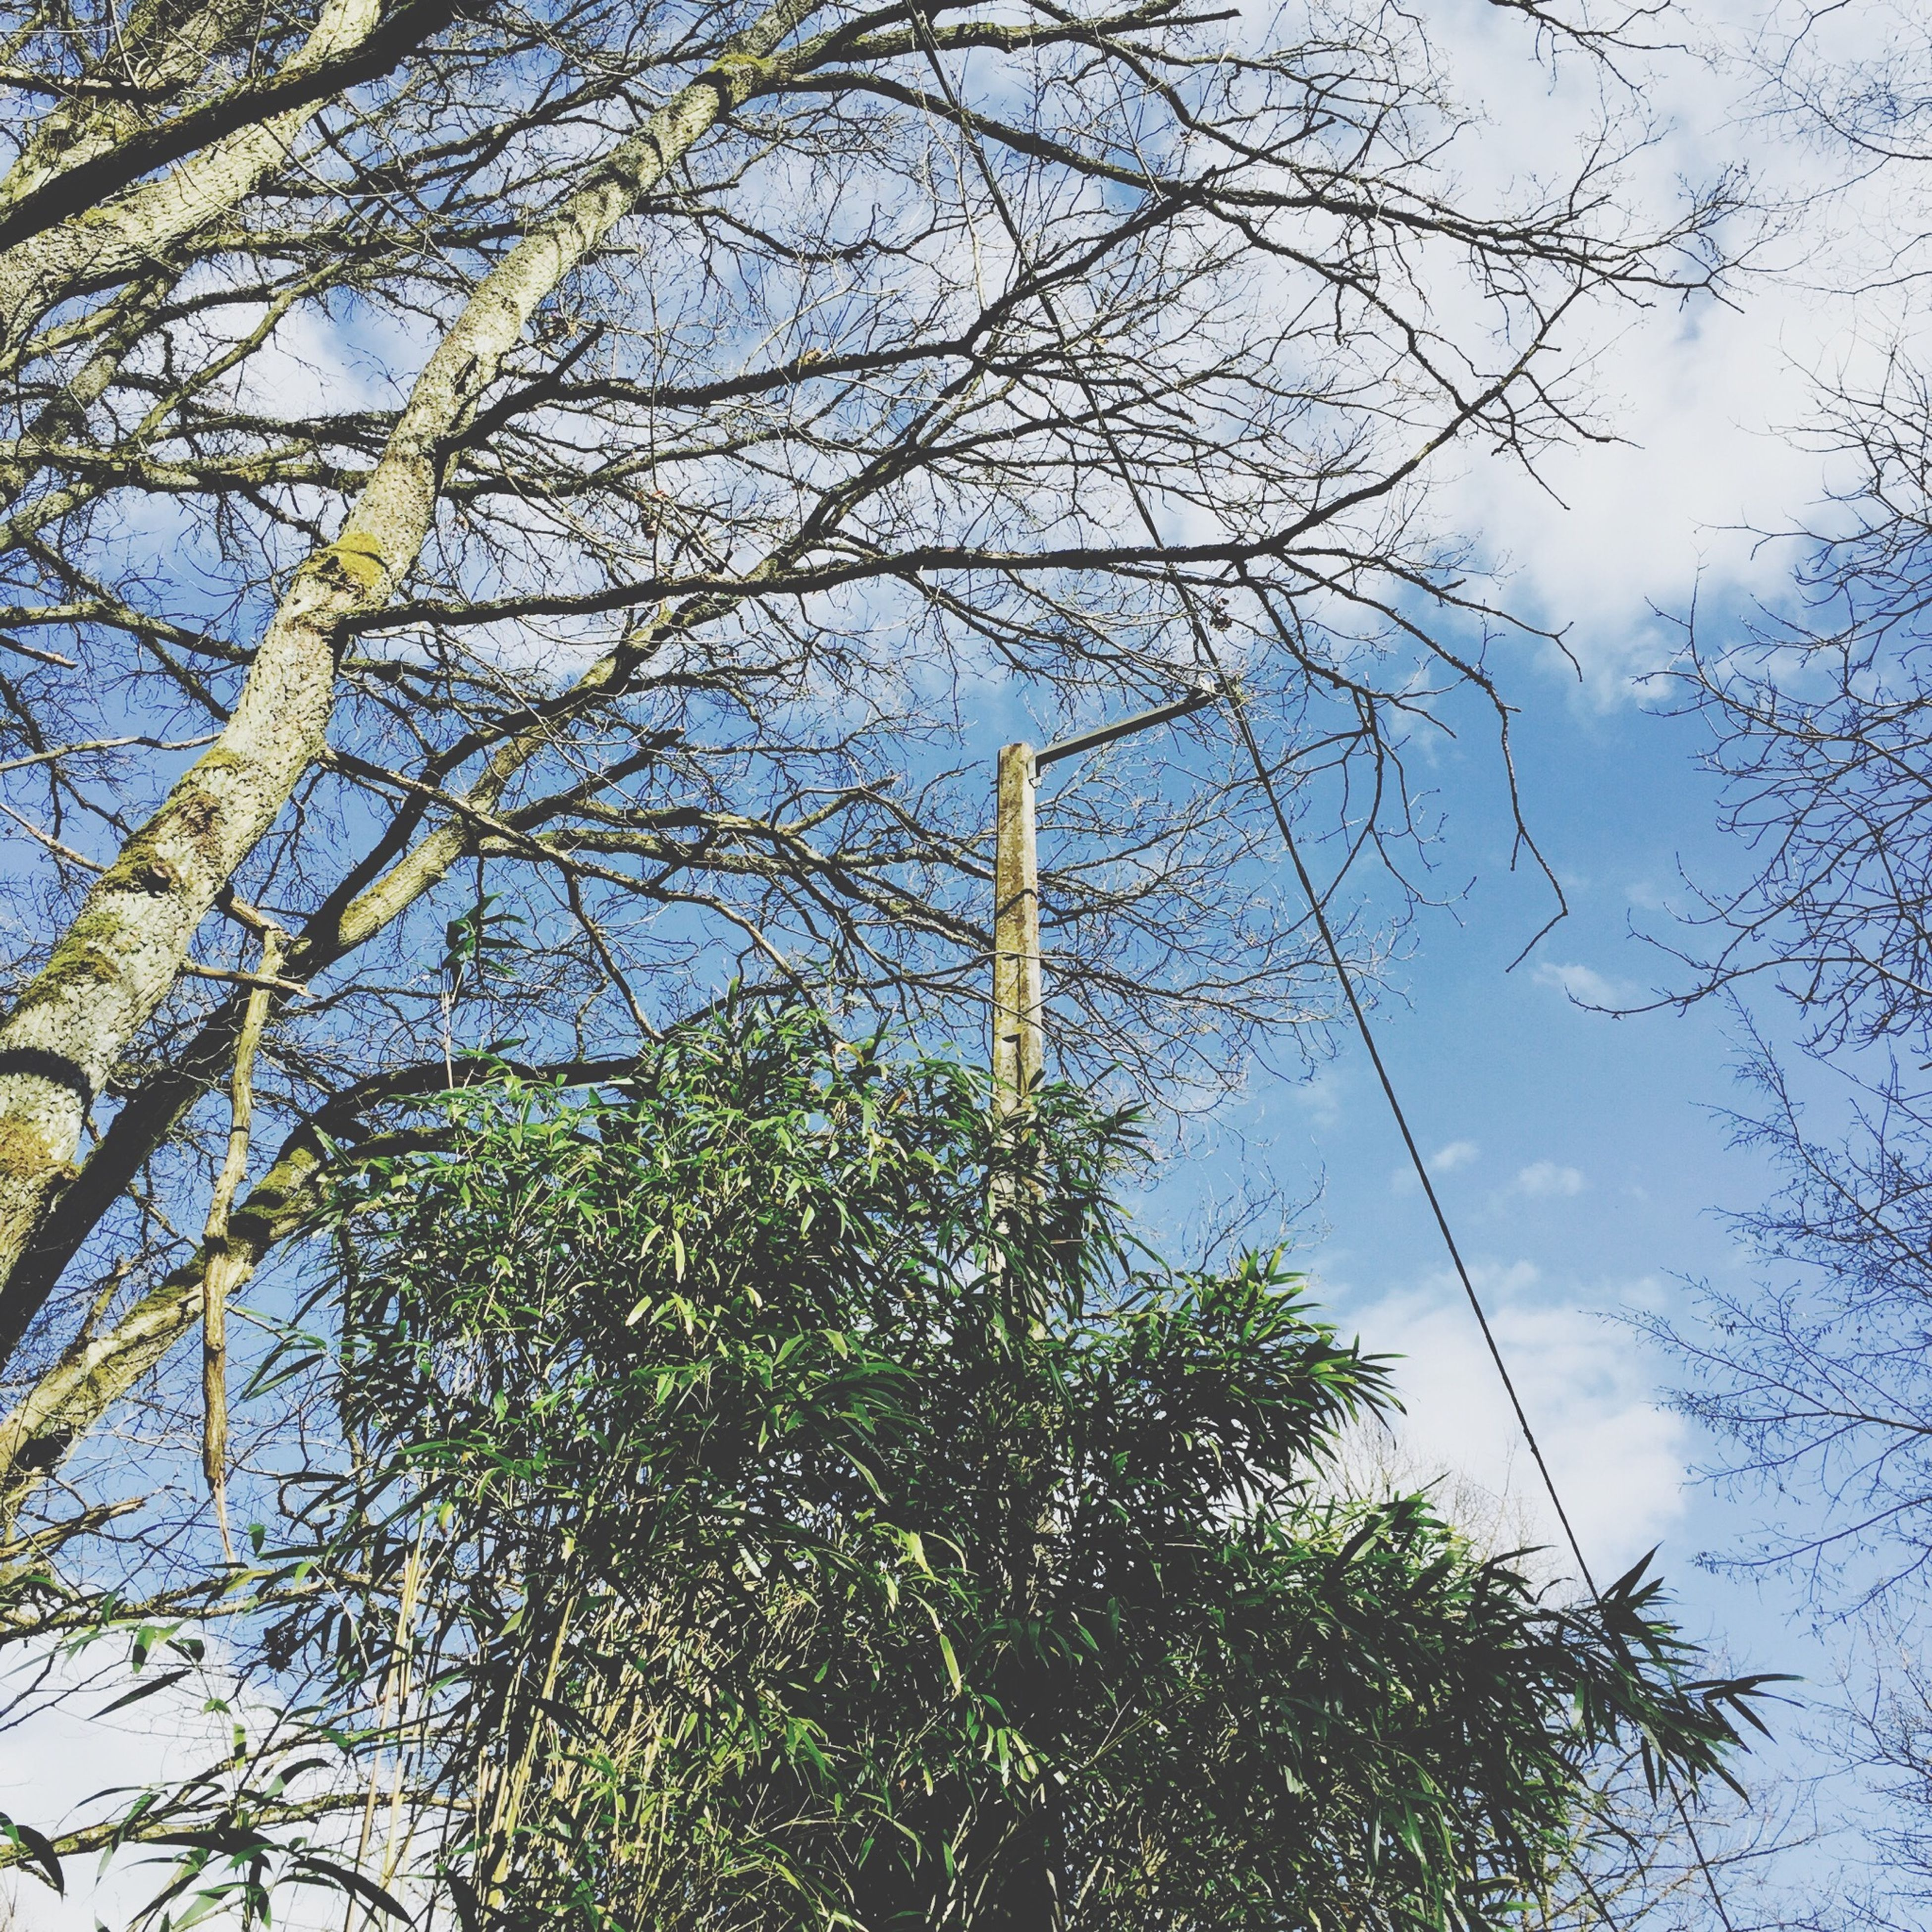 low angle view, tree, branch, sky, growth, nature, day, blue, outdoors, no people, beauty in nature, tranquility, tall - high, cloud - sky, high section, leaf, street light, green color, bare tree, cloud